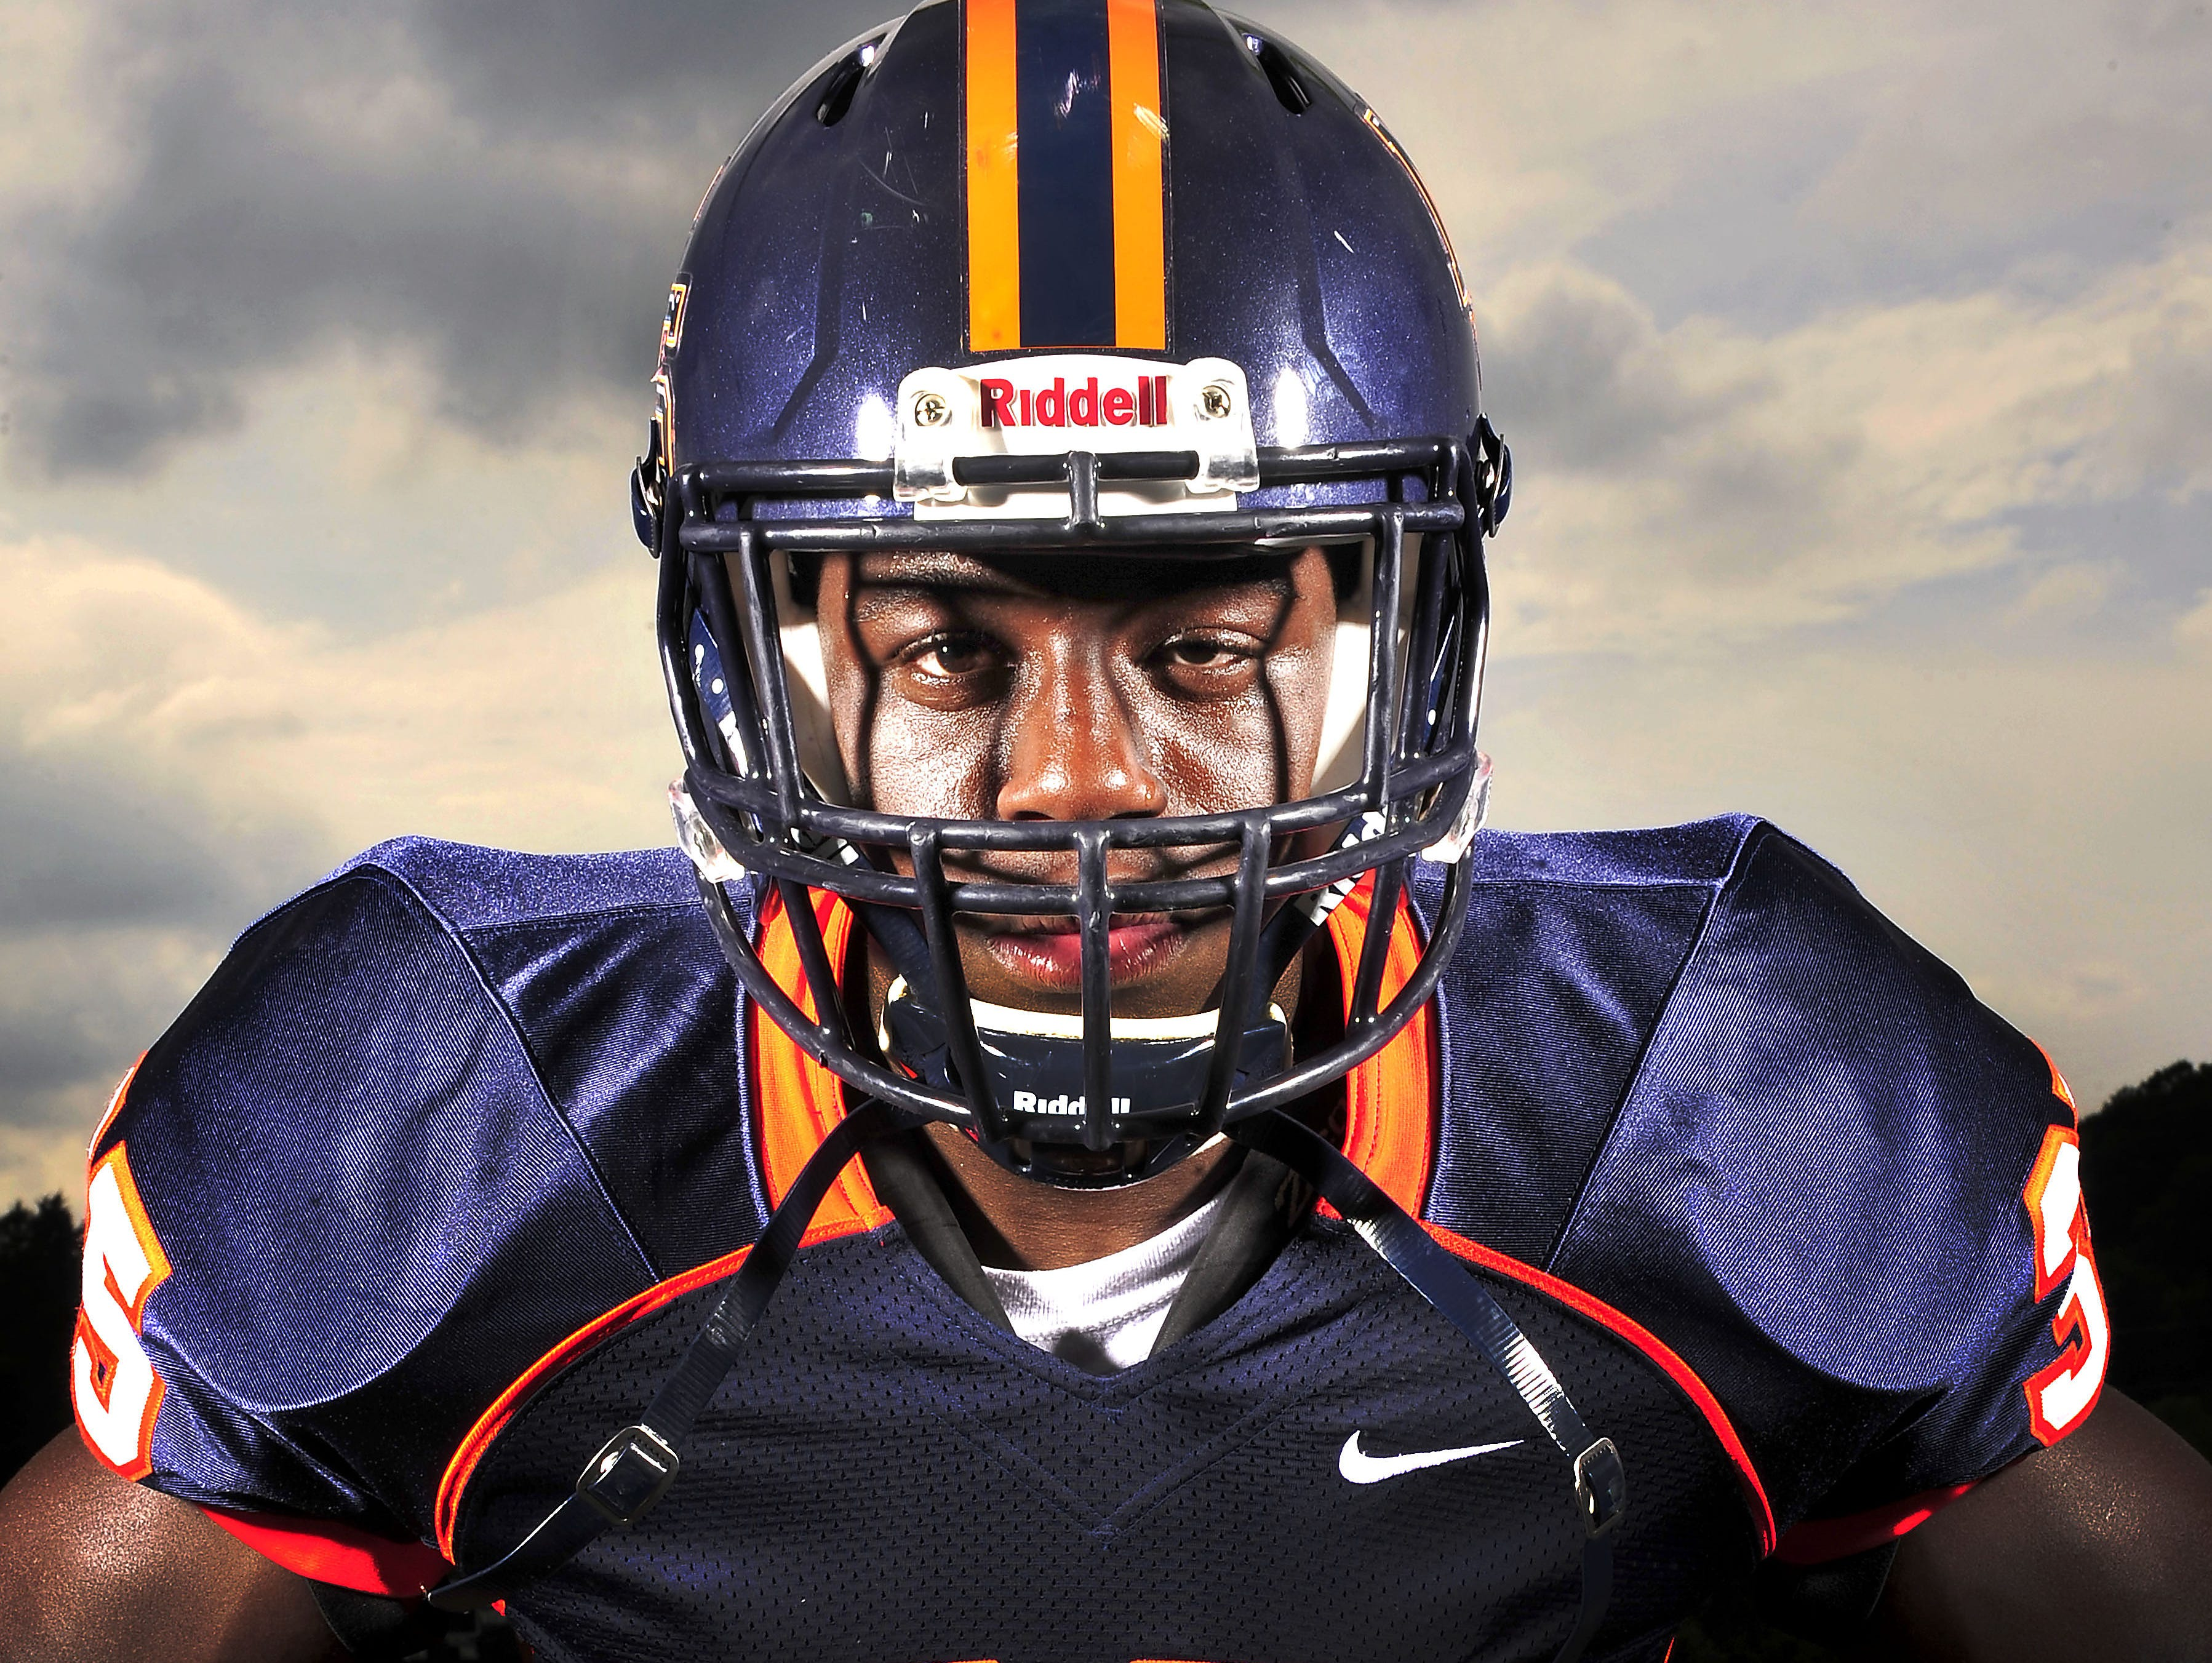 Nashville Christian senior Daniel Bituli, No. 1 on The Tennessean's 2015 Dandy Dozen, is committed to play football at the University of Tennessee.